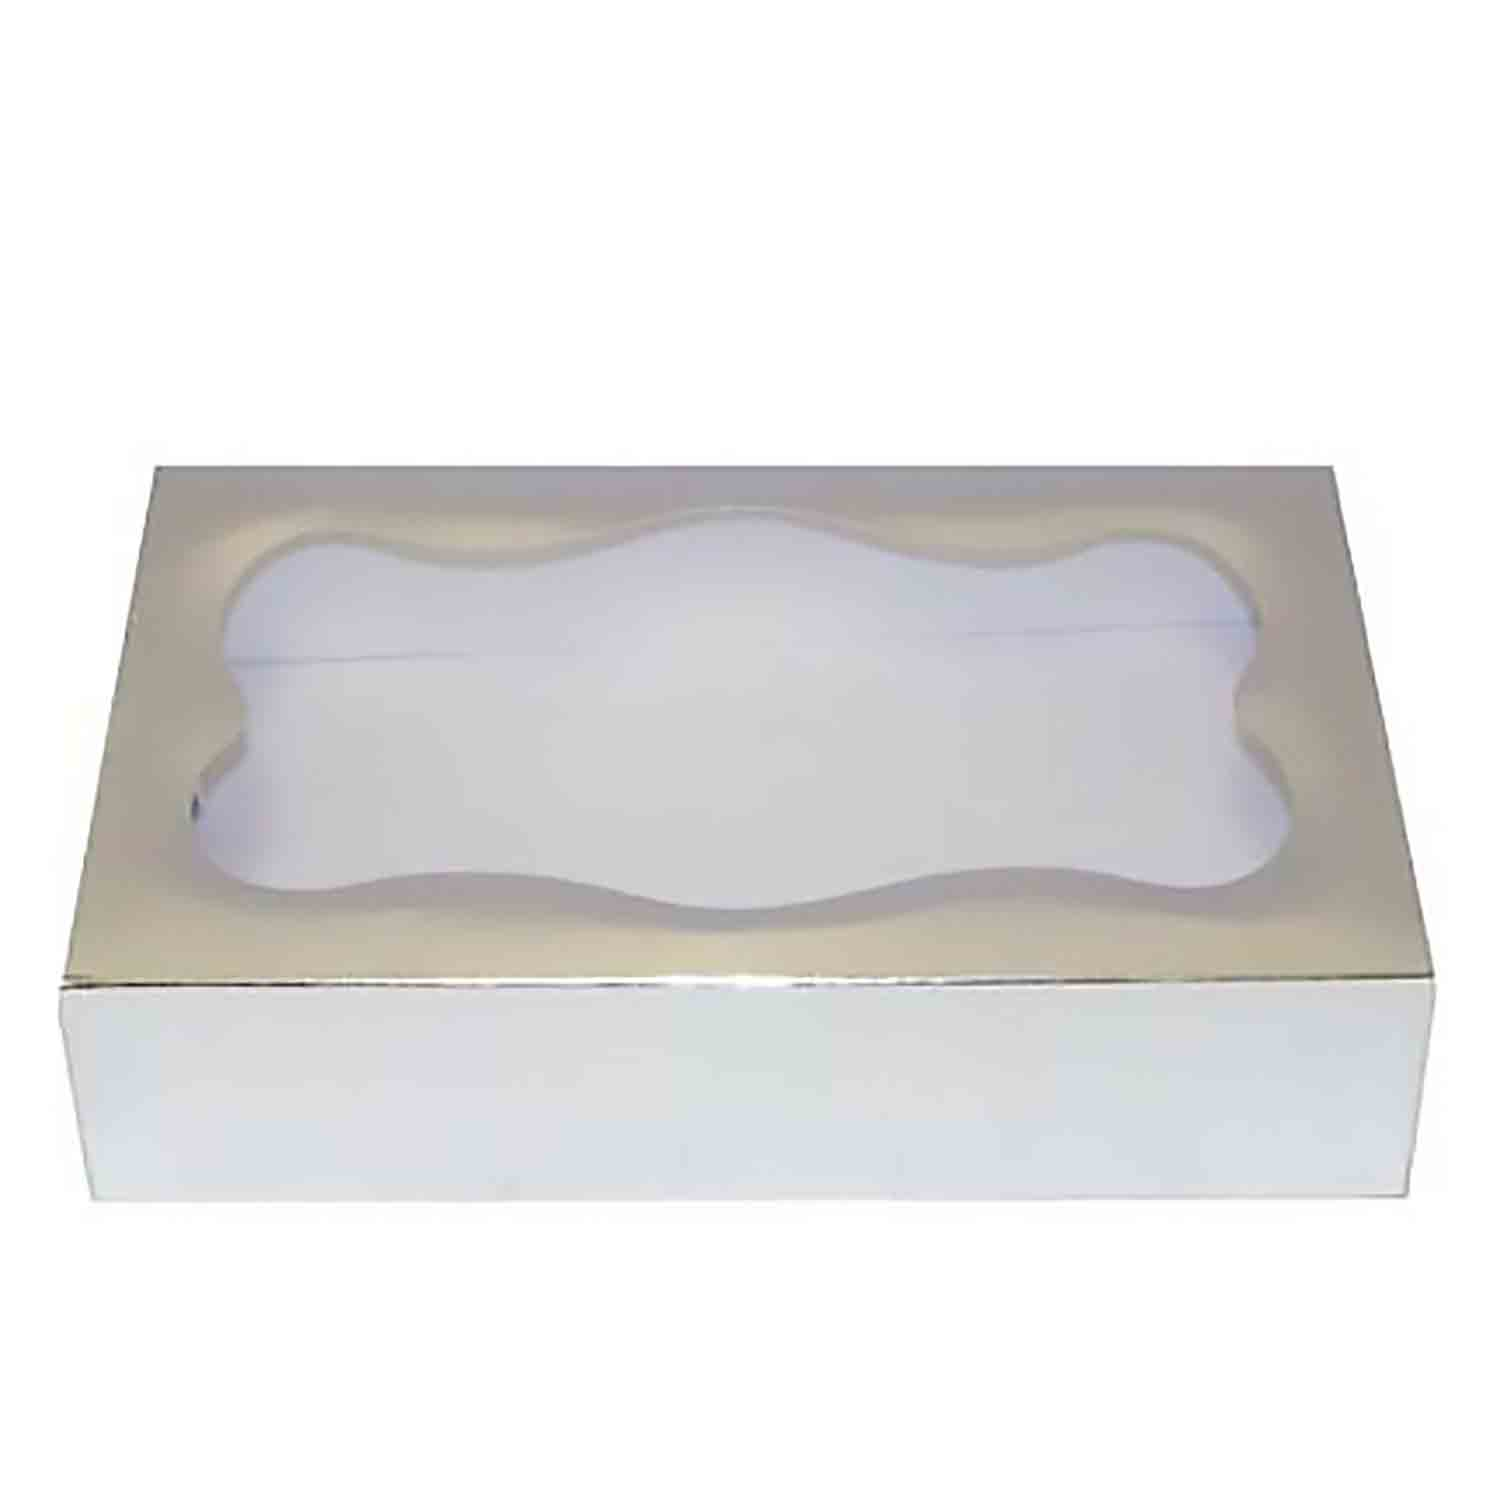 2 lb. Silver Foil Cookie Box with Window